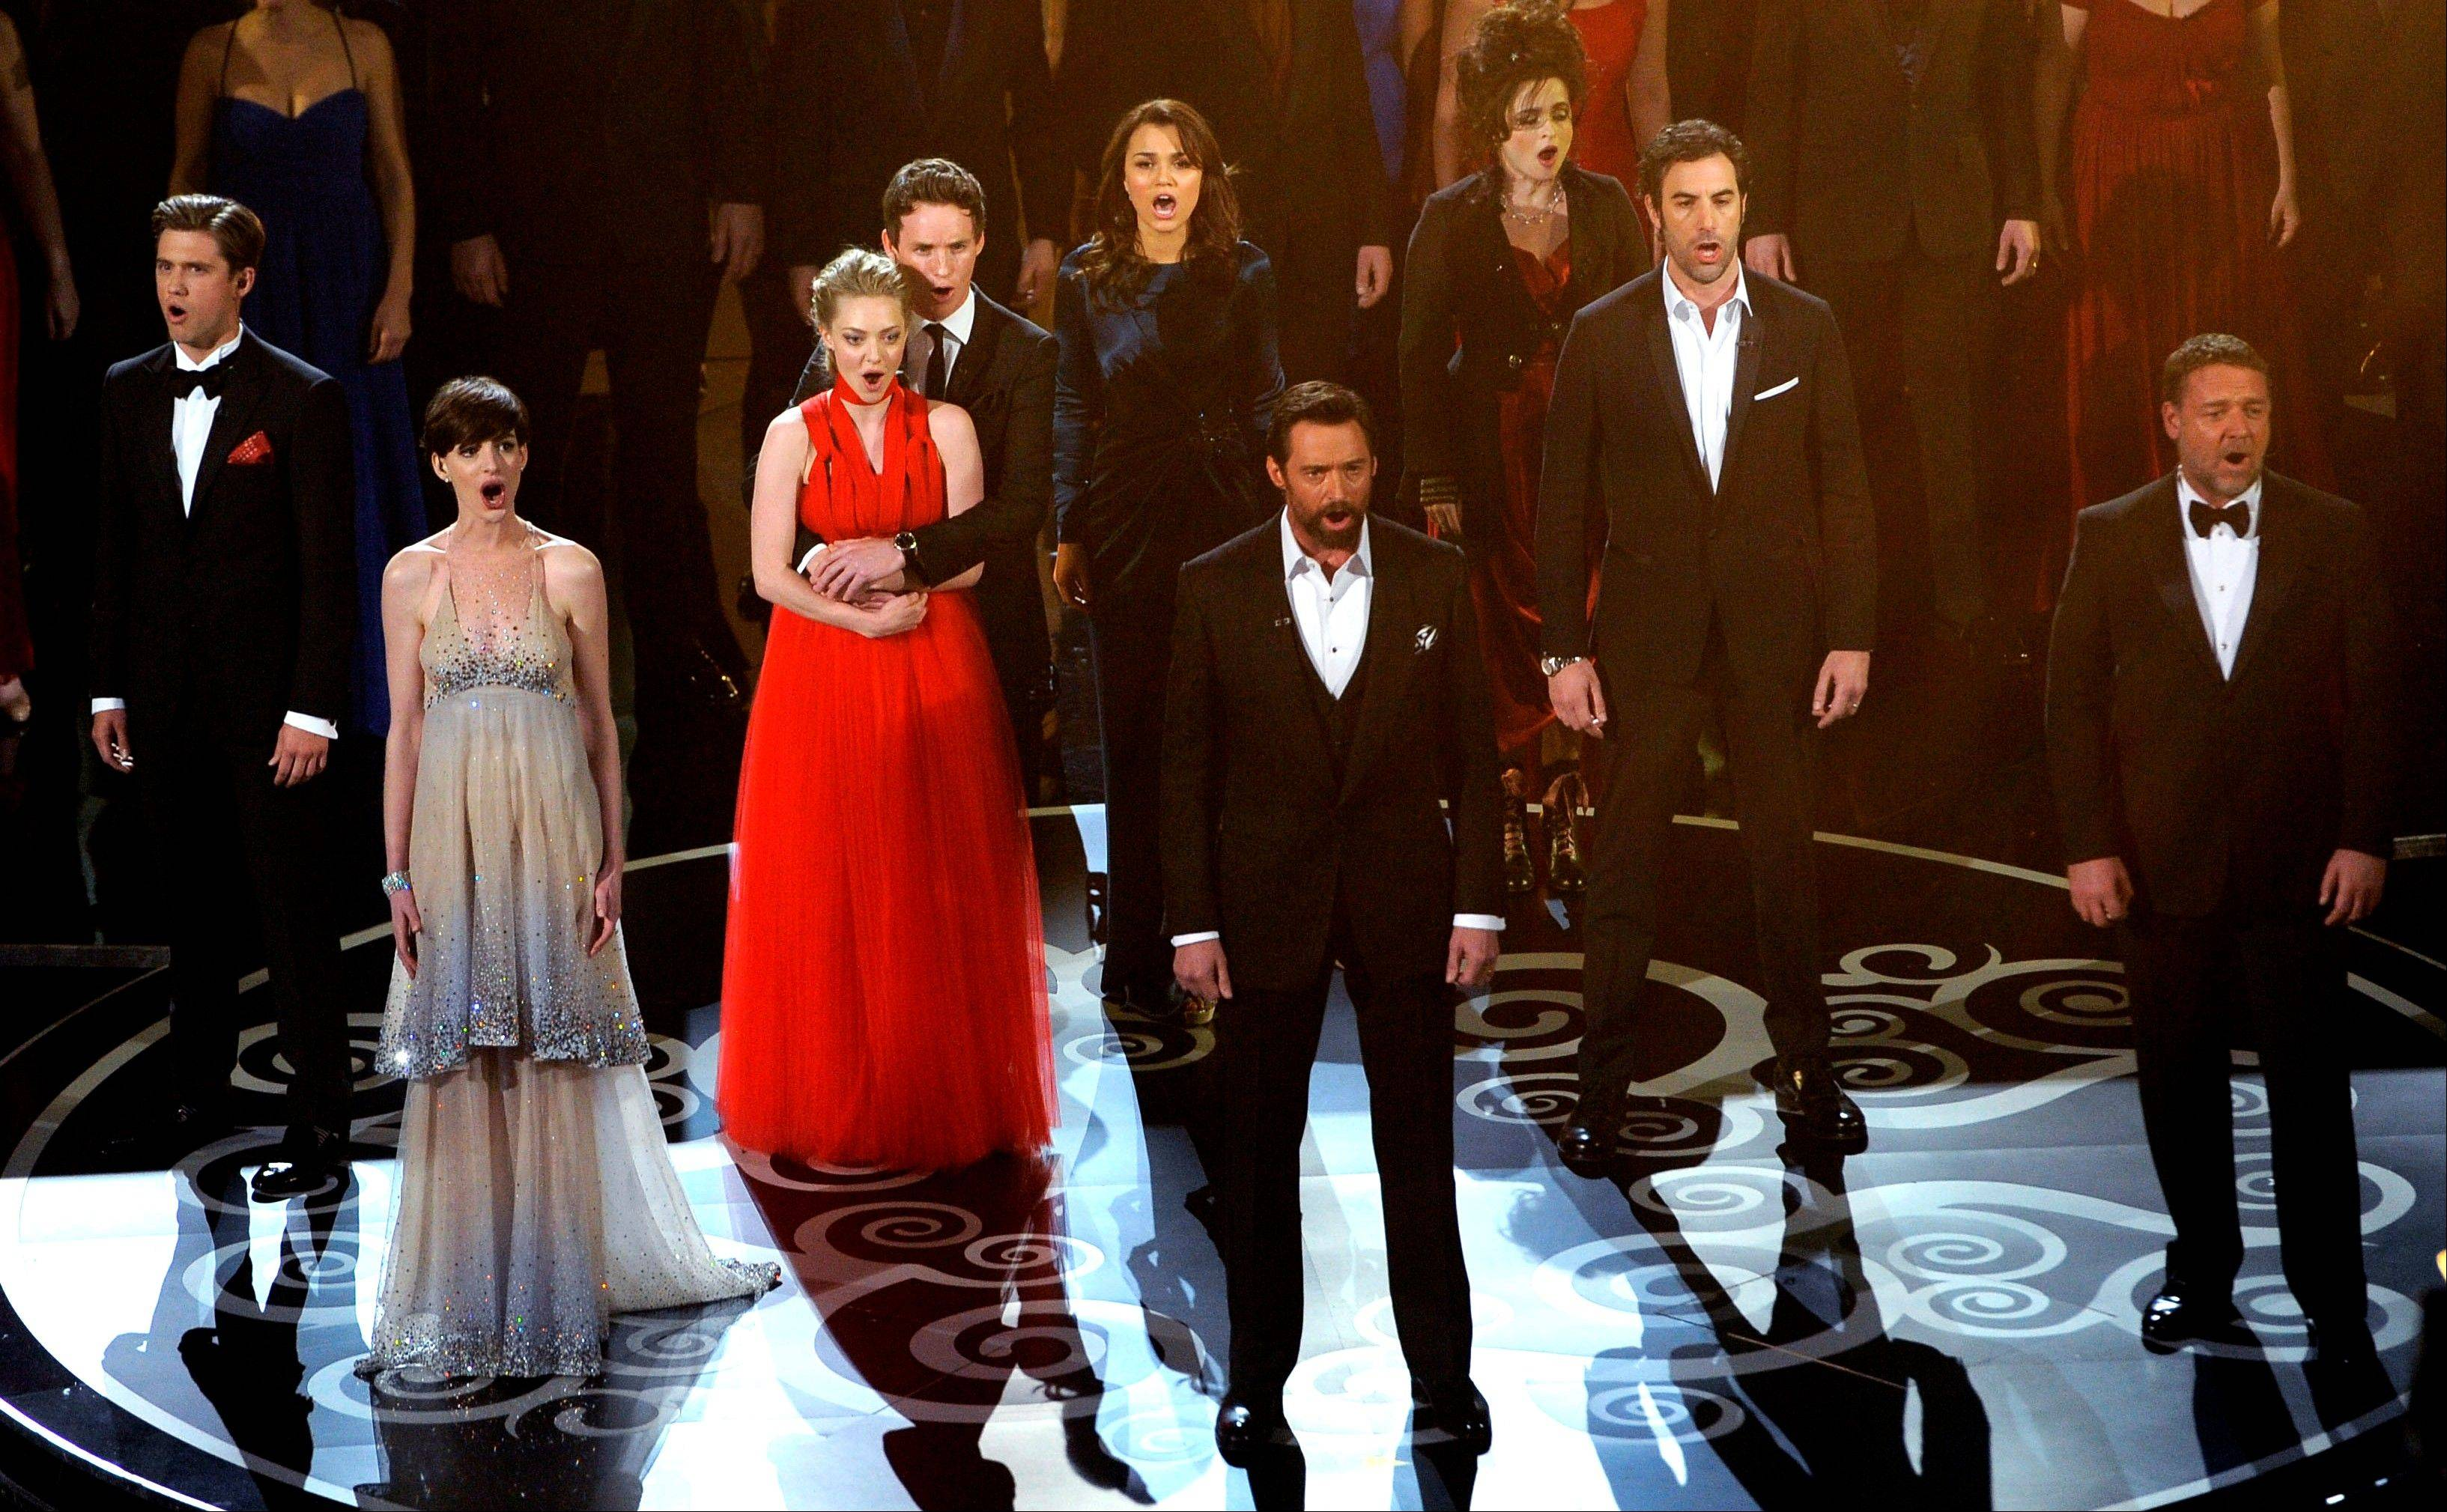 """Les Miserables"" cast members Aaron Tveit, left, Anne Hathaway, Amanda Seyfried, Eddie Redmayne, Samantha Barks, Hugh Jackman, Helena Bonham Carter, Sacha Baron Cohen and Russell Crowe perform at Sunday's Oscars."